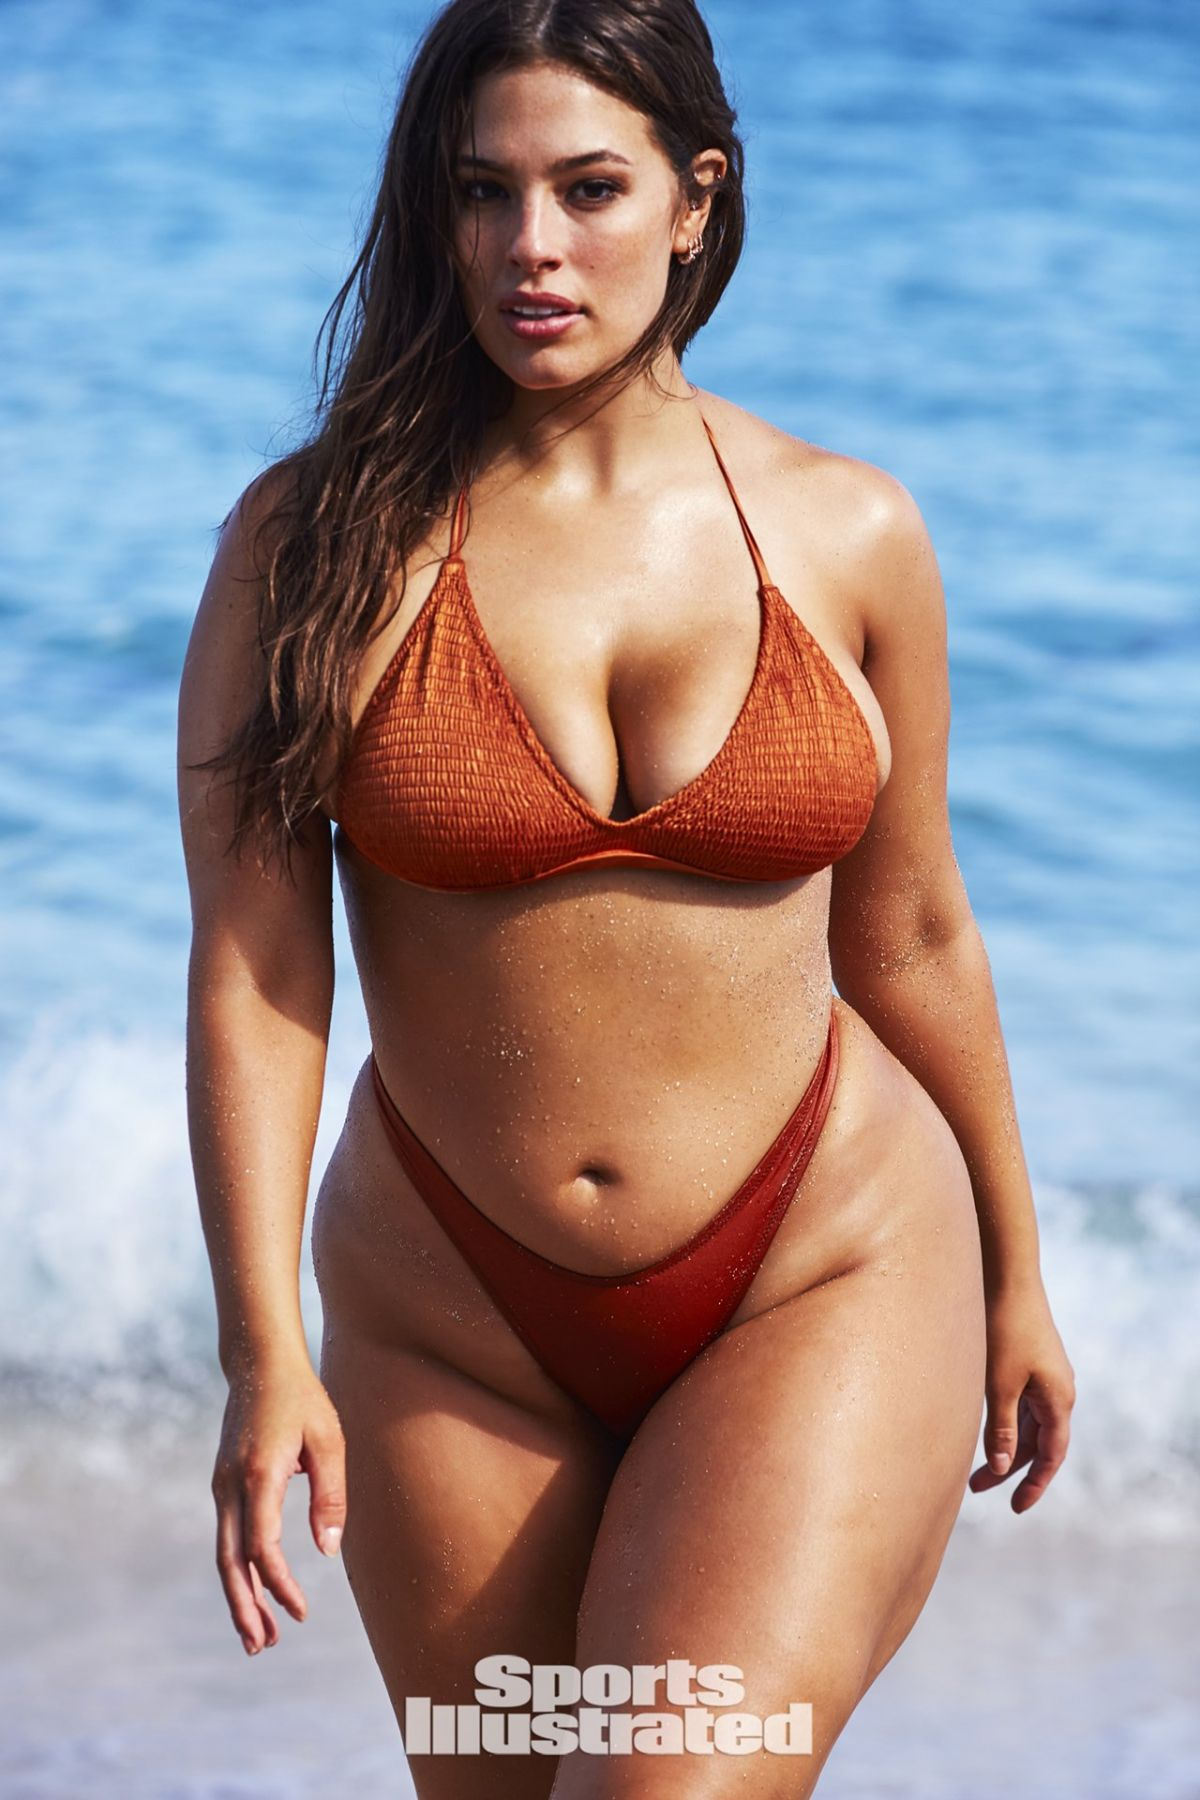 d5eca7913c ASHLEY GRAHAM in Sports Illustrated Swimsuit 2018 Issue – HawtCelebs